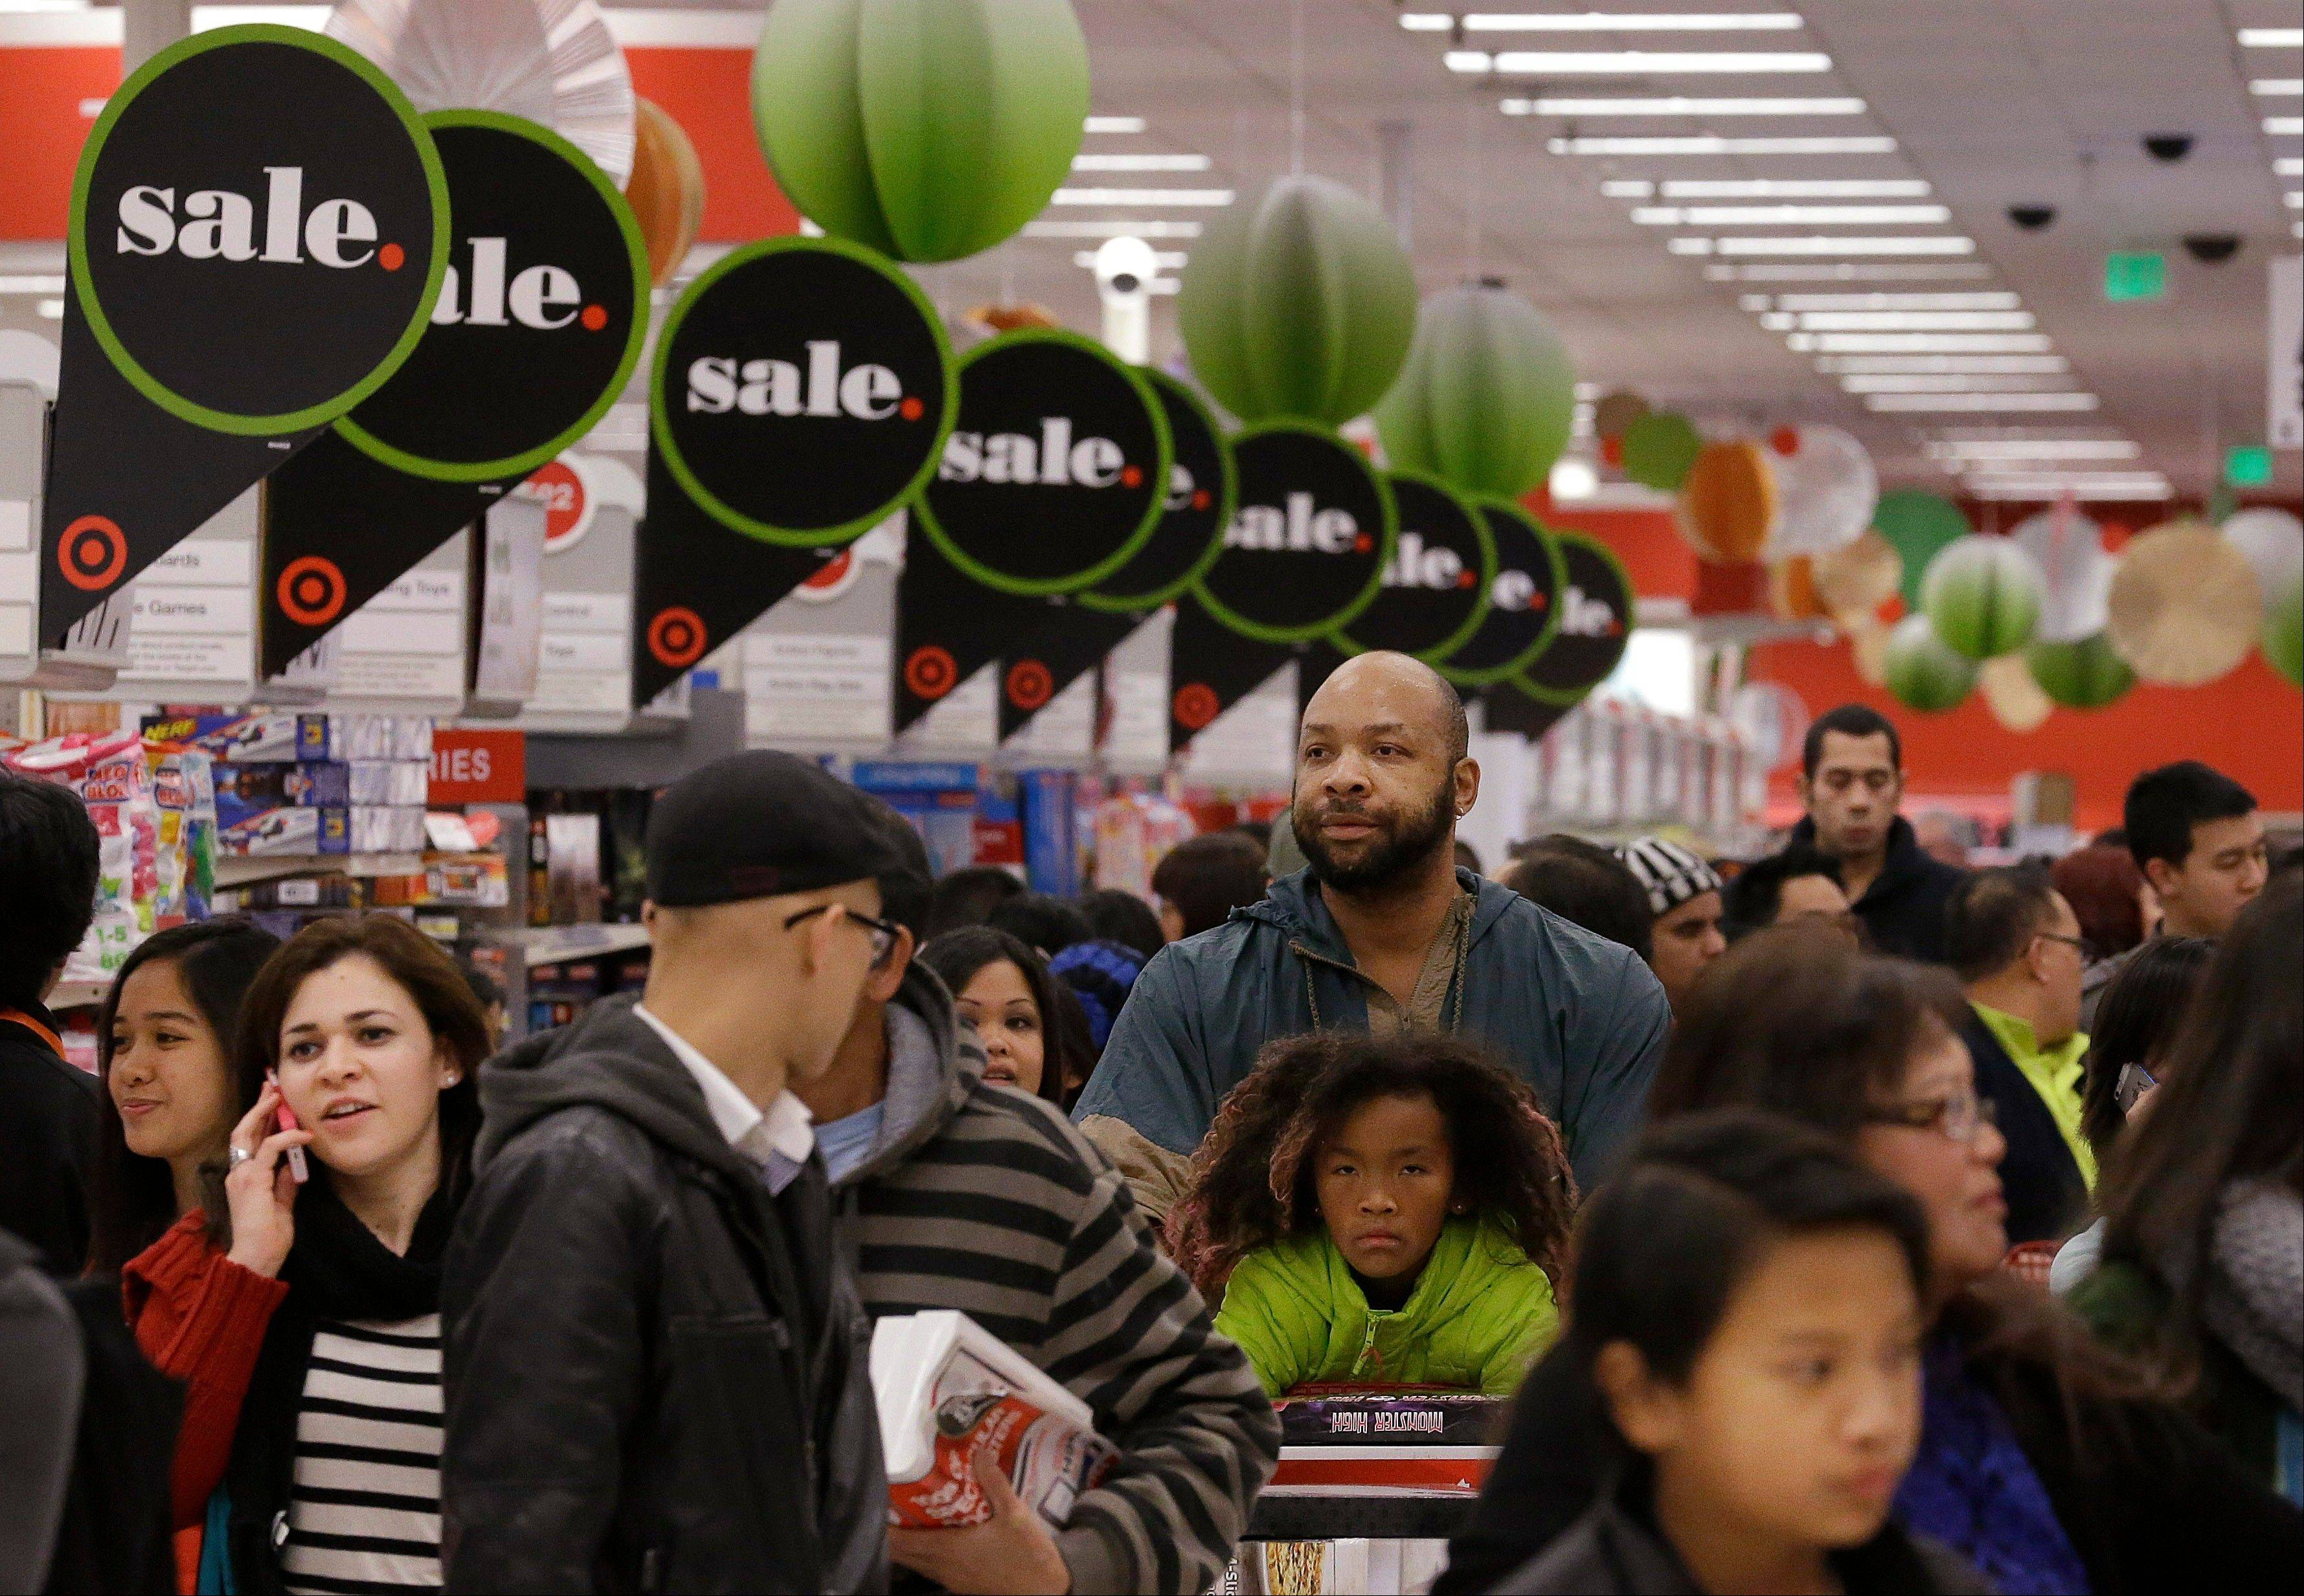 Shoppers at a Target store in Colma, Calif. The retail giant wasn't the only company to get hit with a data breach over the holidays. Last week, Neiman Marcus said thieves stole some of its customers' payment information and made unauthorized charges over the holidays.